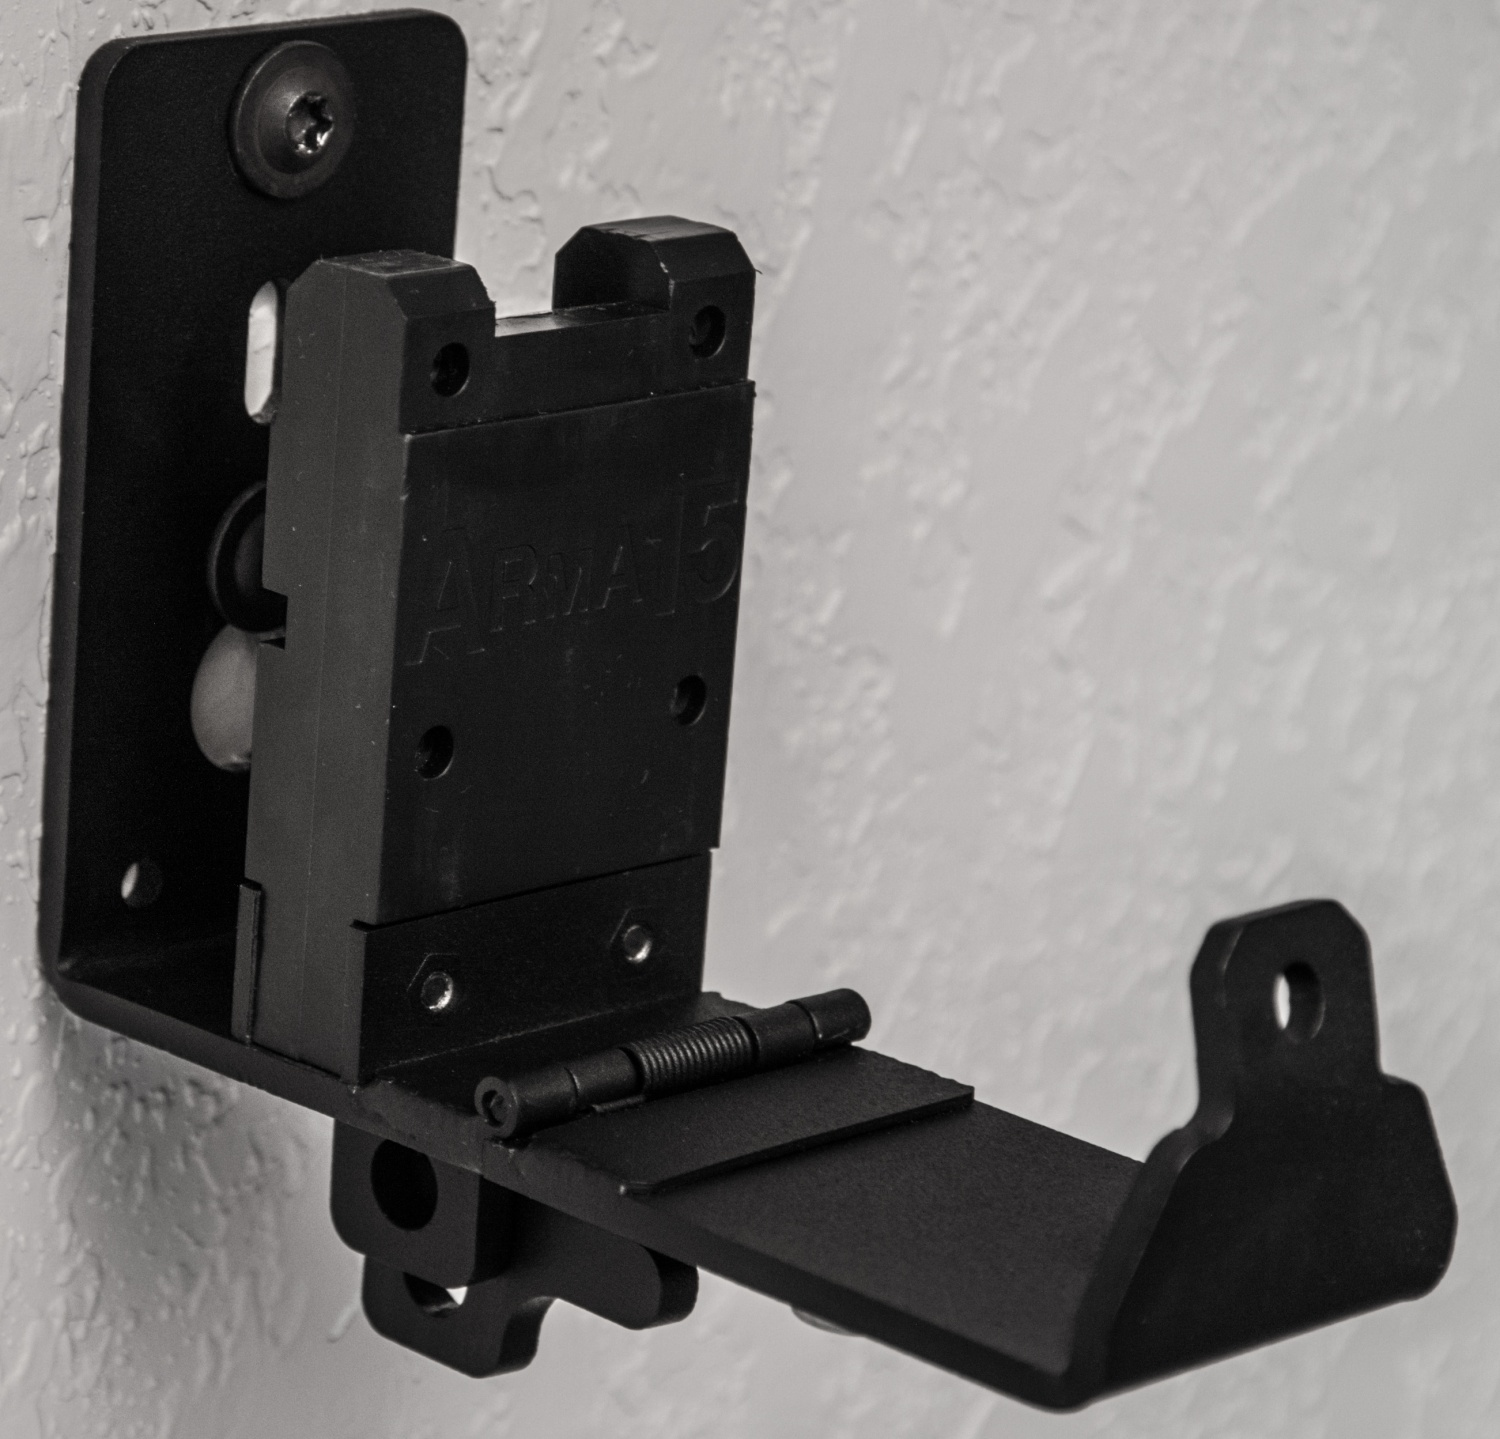 Arma 15 Wall Mount Product Review New Products Open